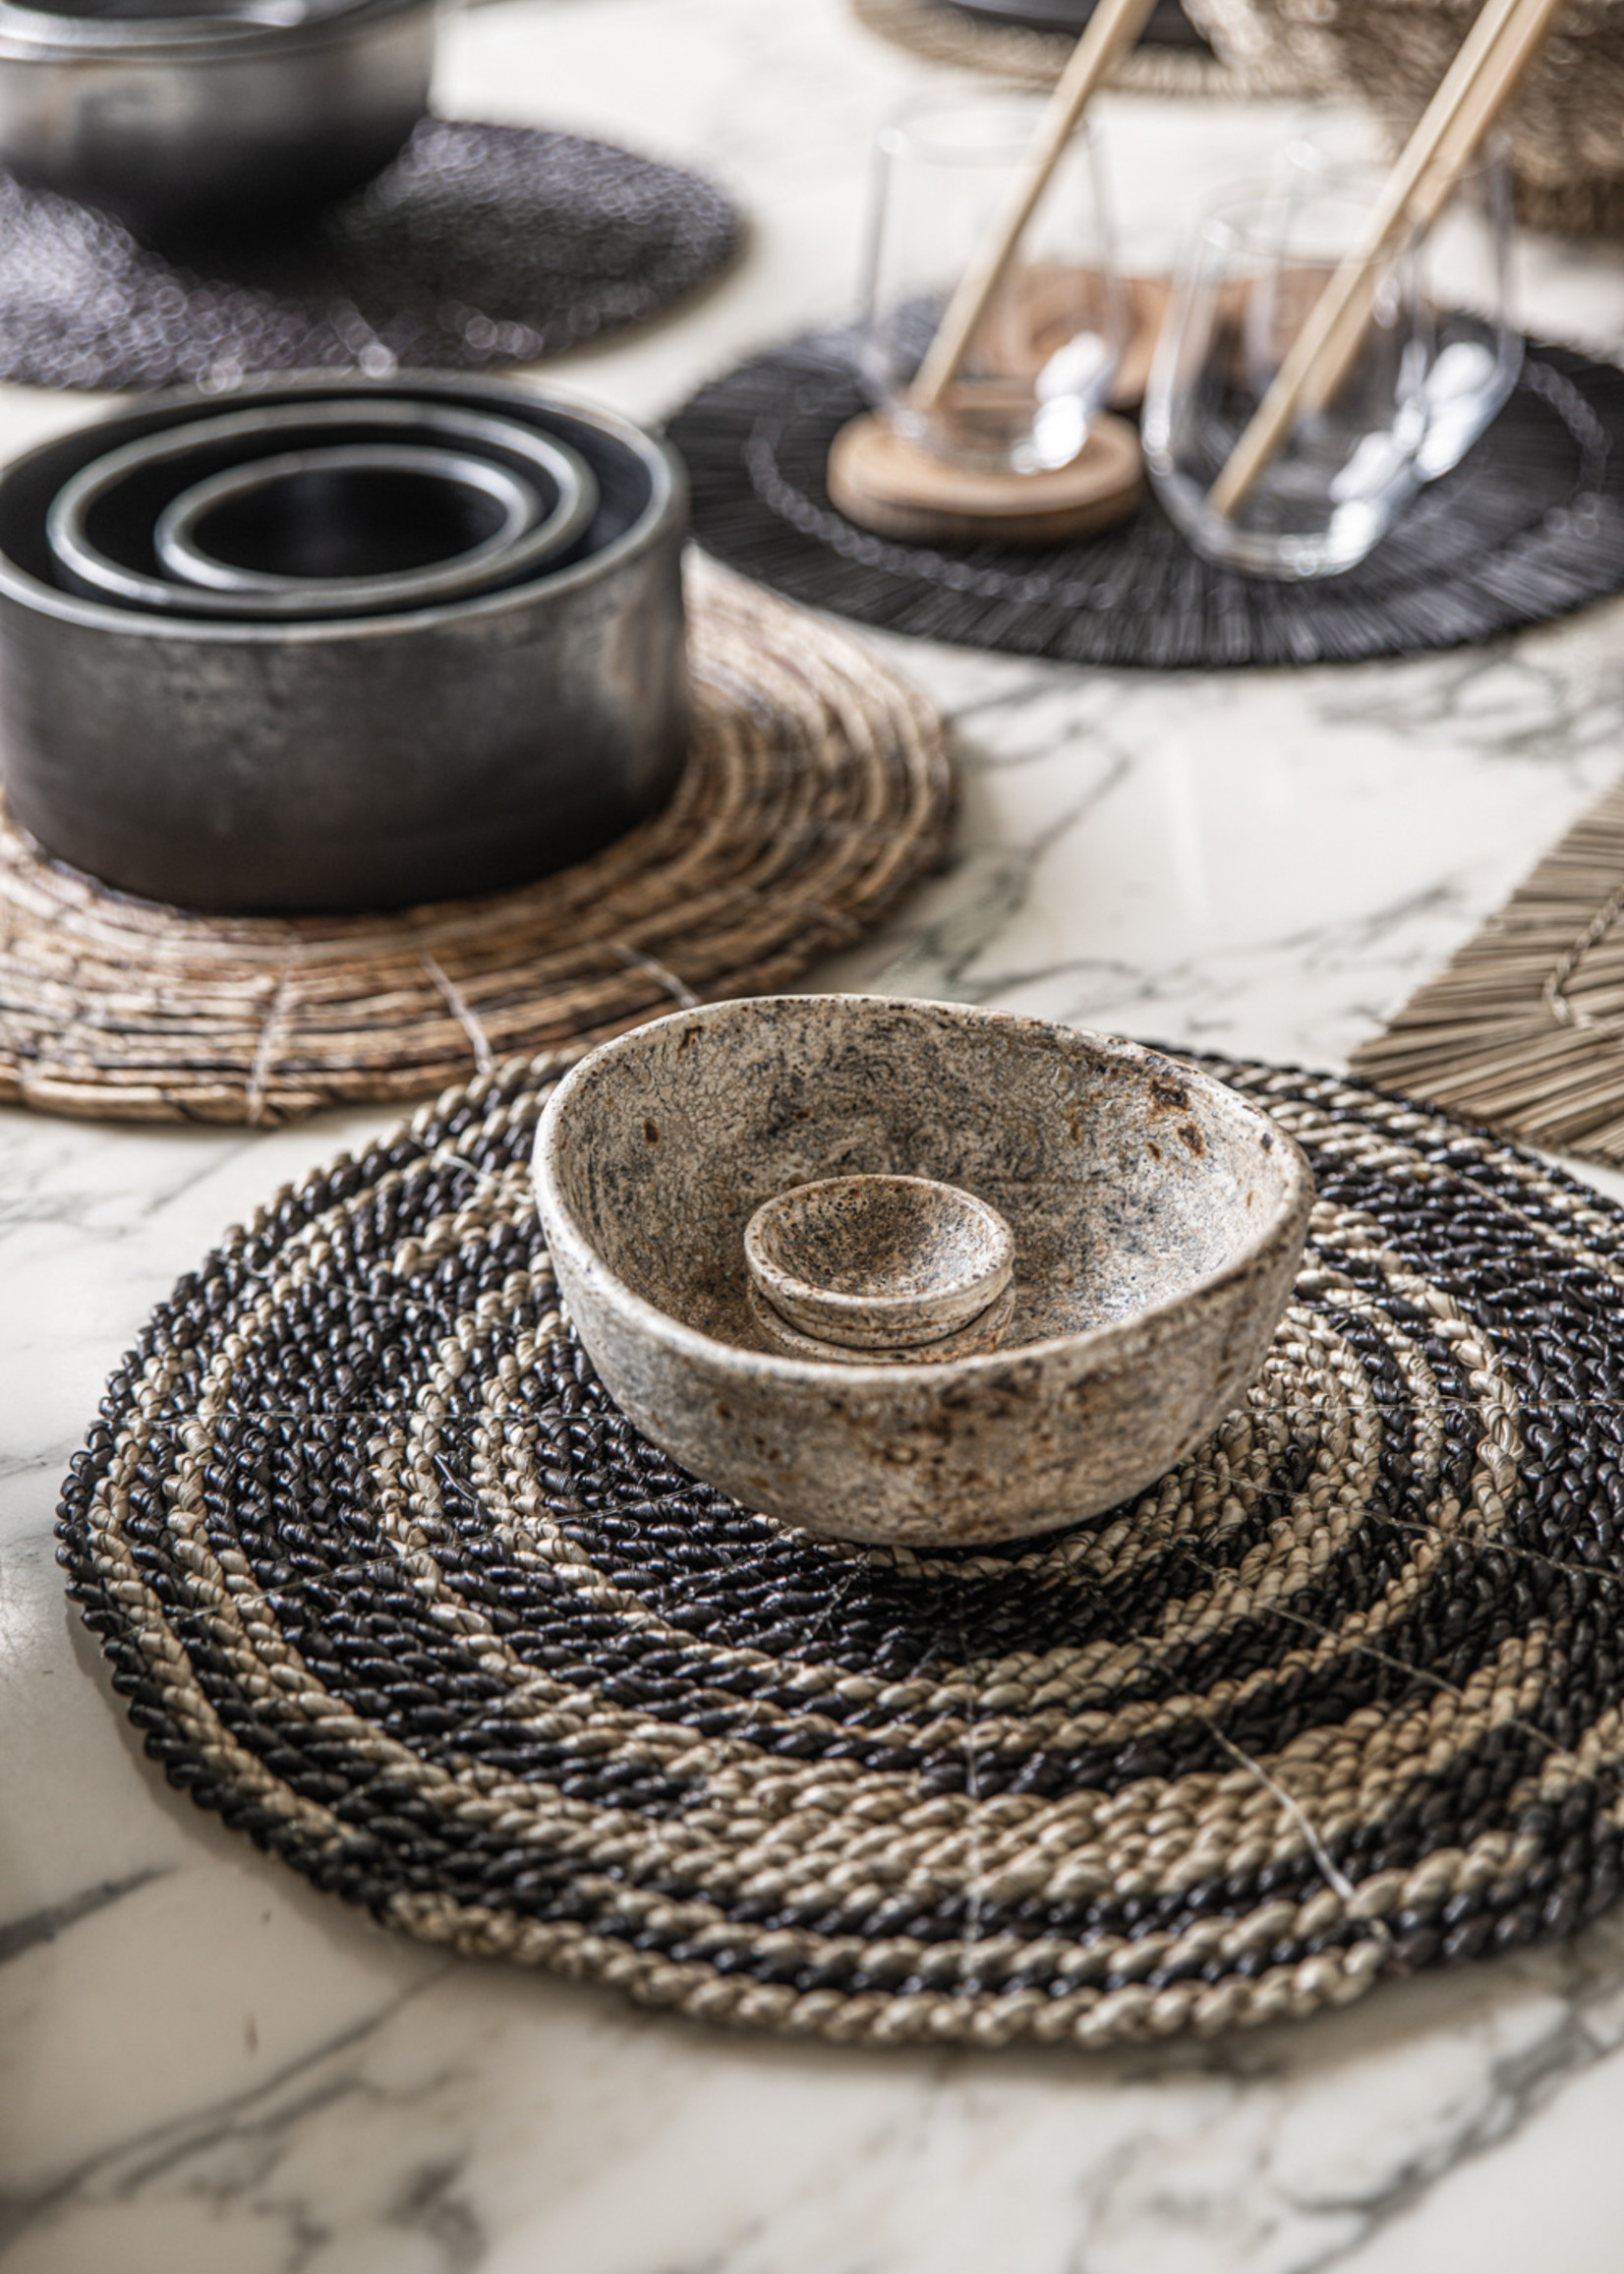 The Seagrass Placemat - Natural Black